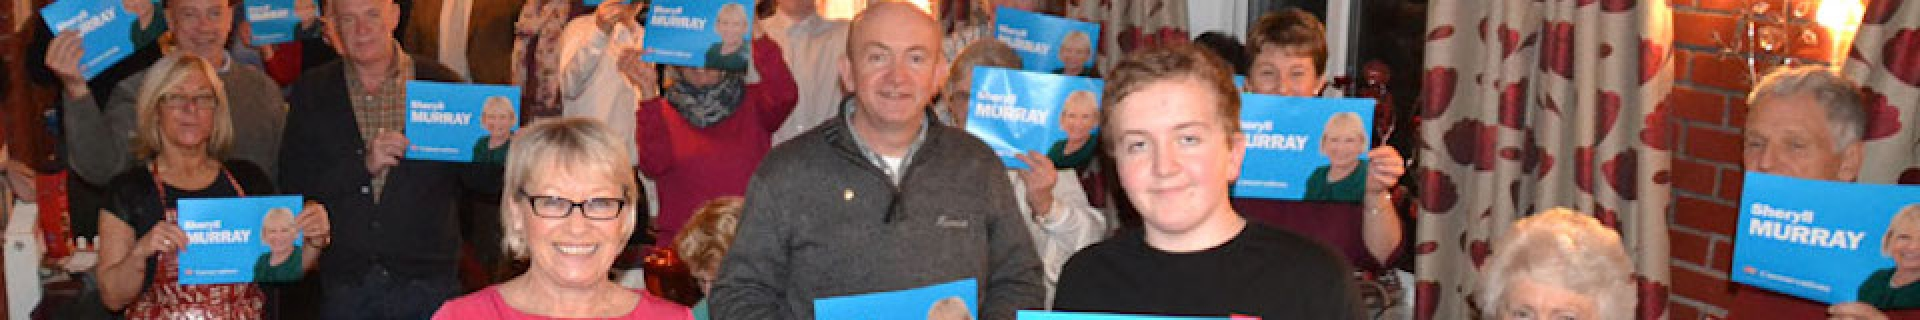 Banner image for South East Cornwall Conservatives